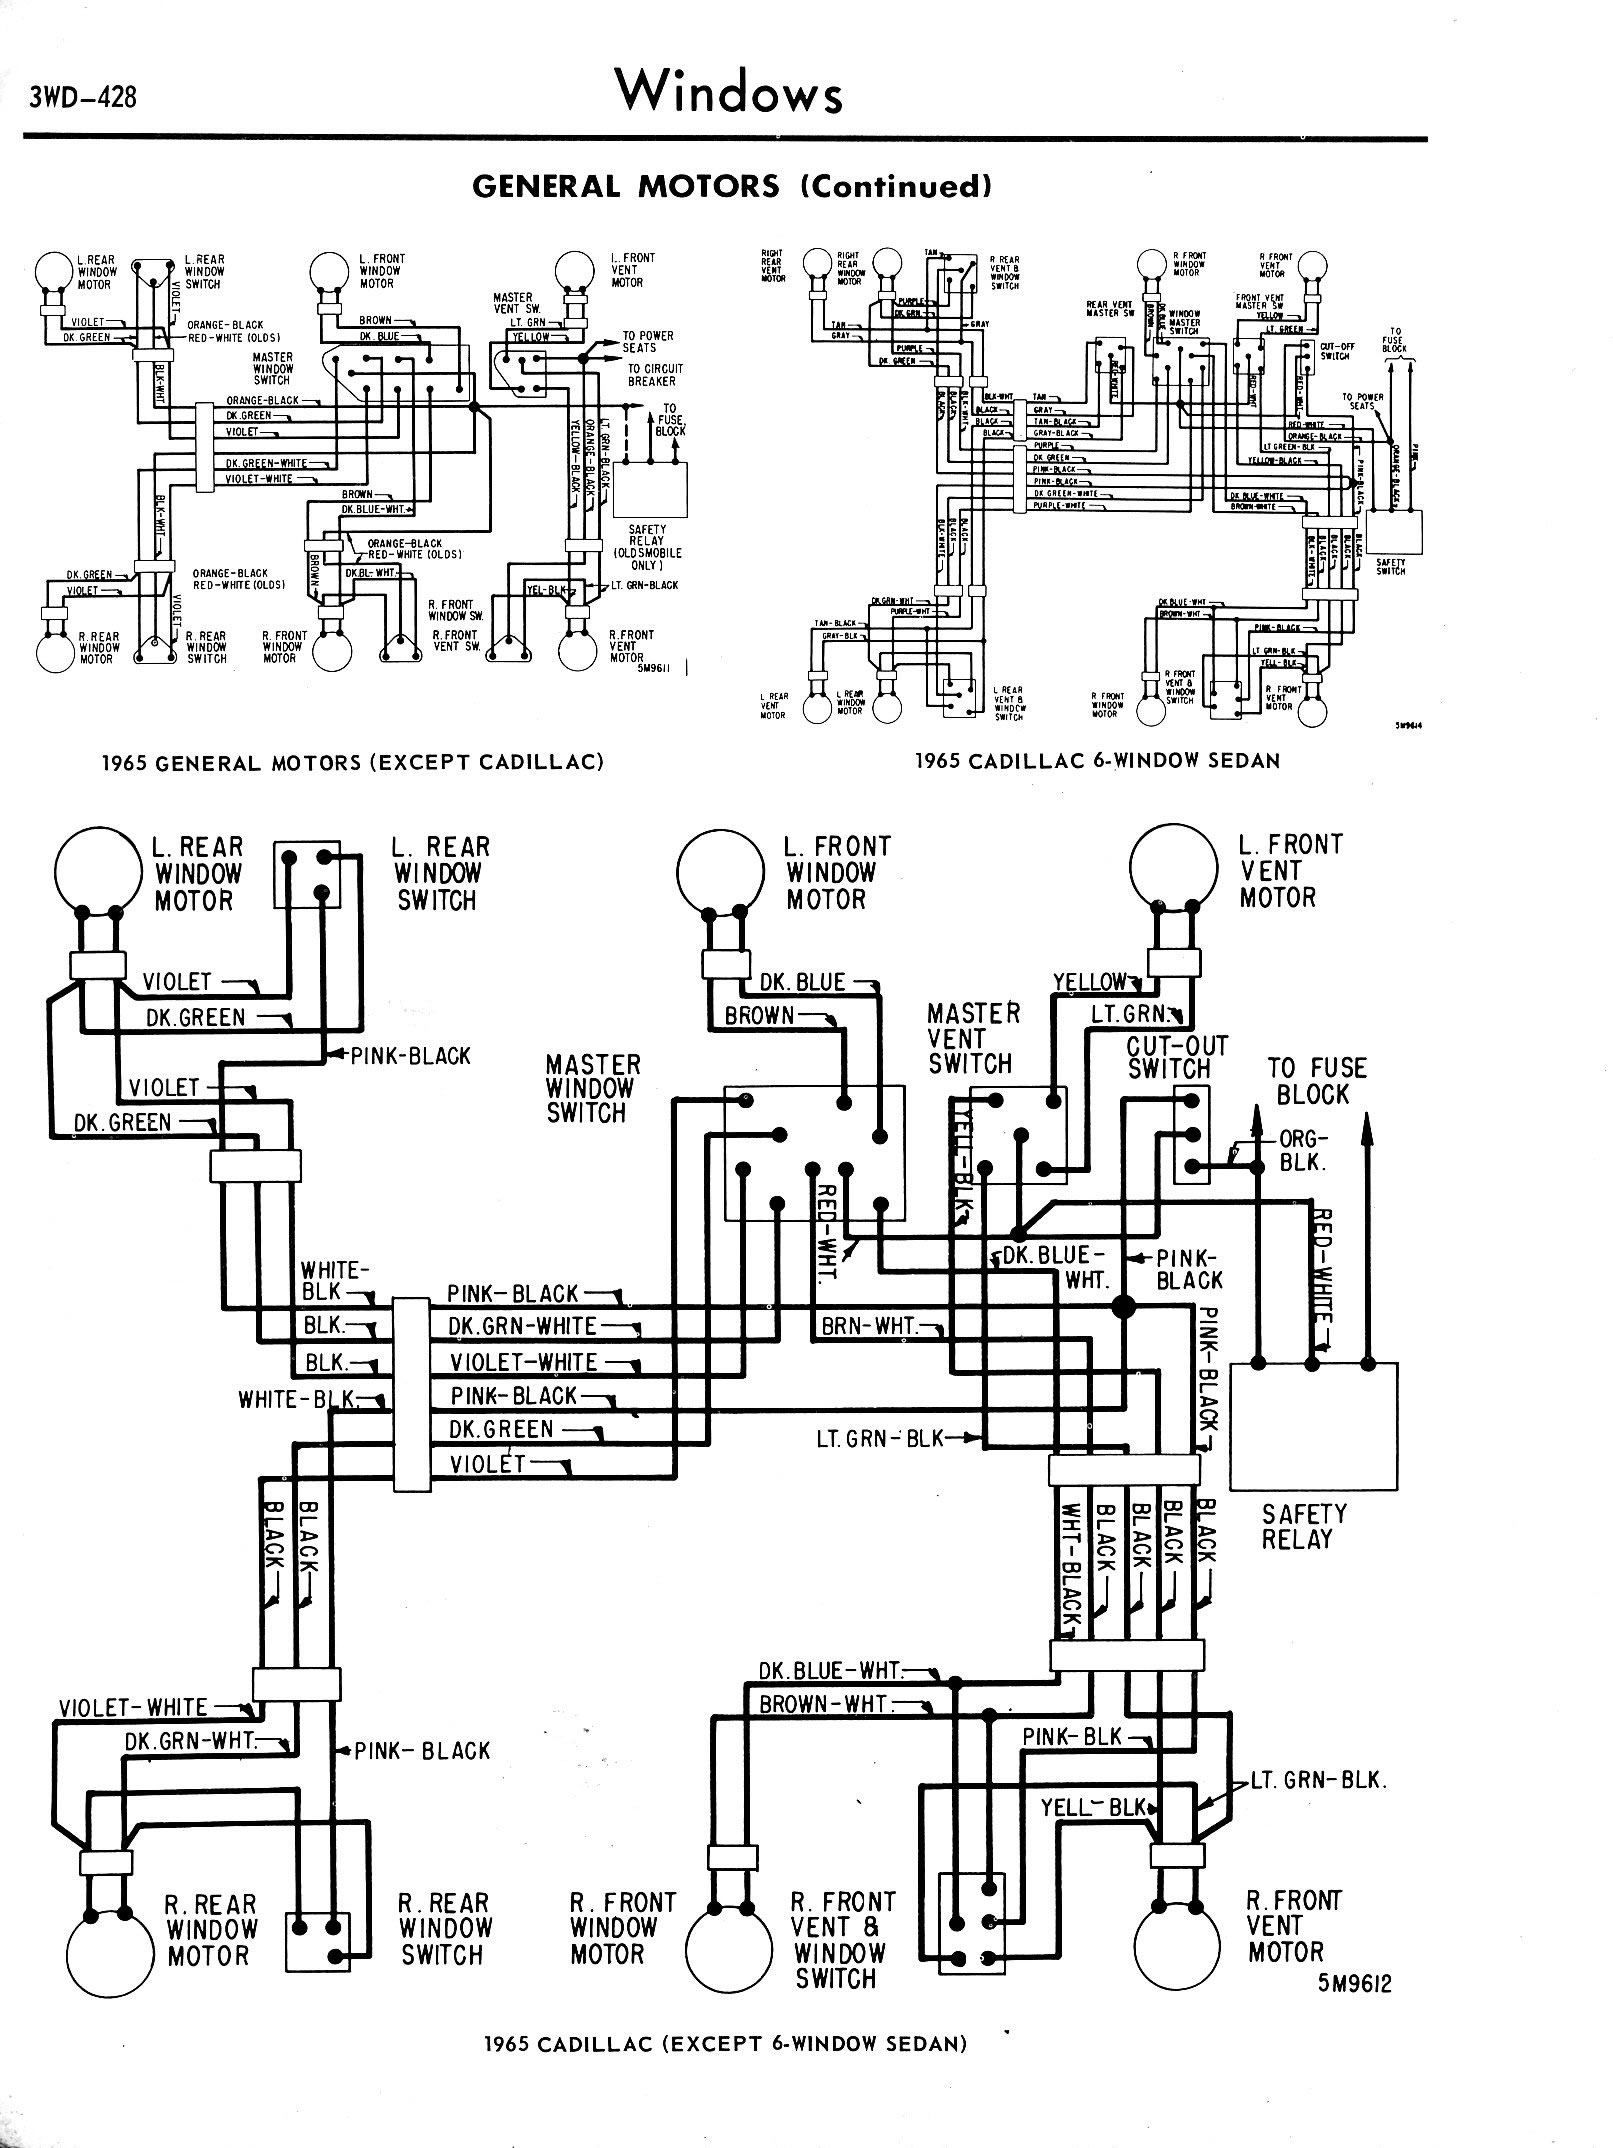 3WD 428_jpg chevy diagrams gm power window wiring schematic at bakdesigns.co